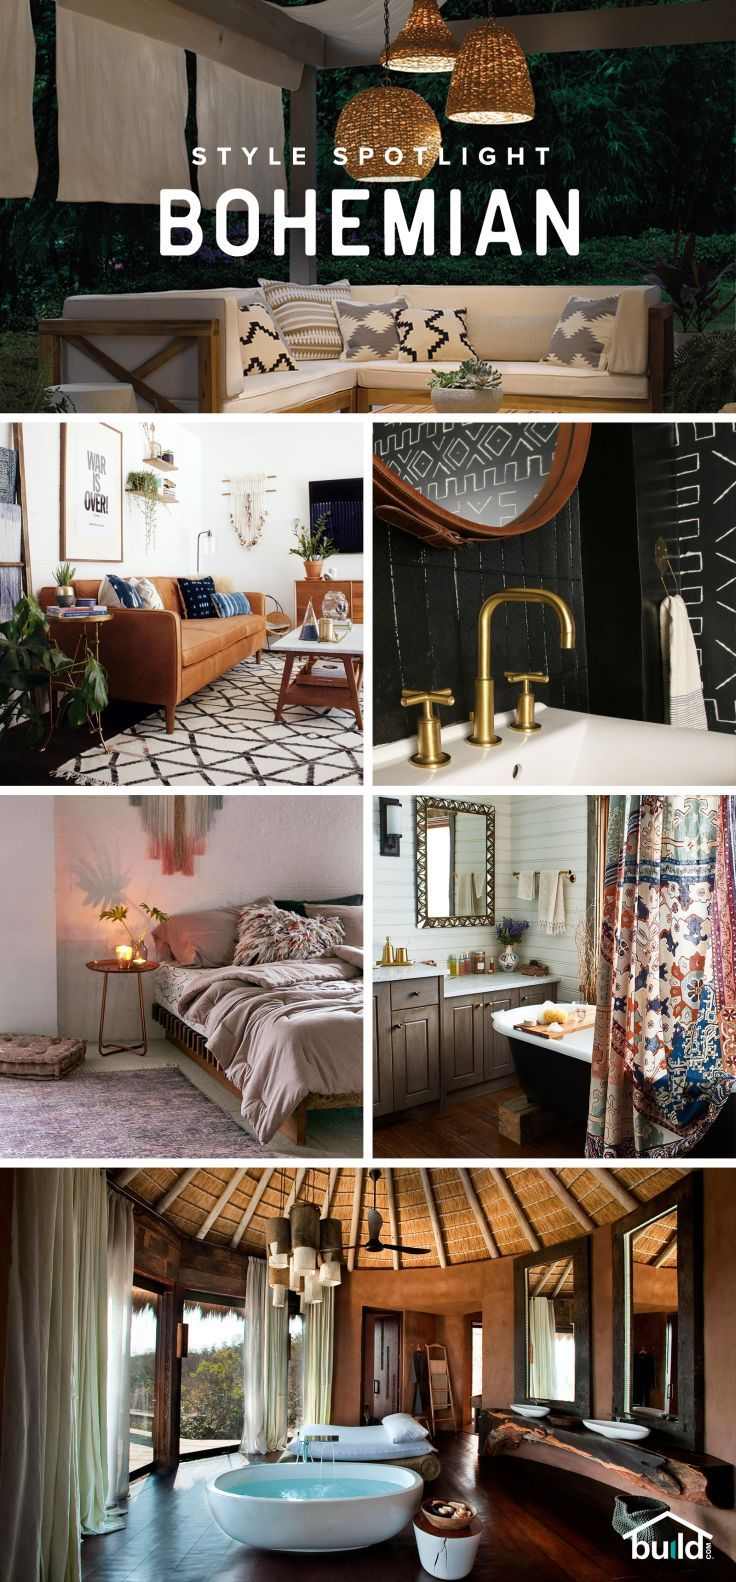 Love Bohemian design? Find the best selection for your project - from floor to ceiling at Build.com